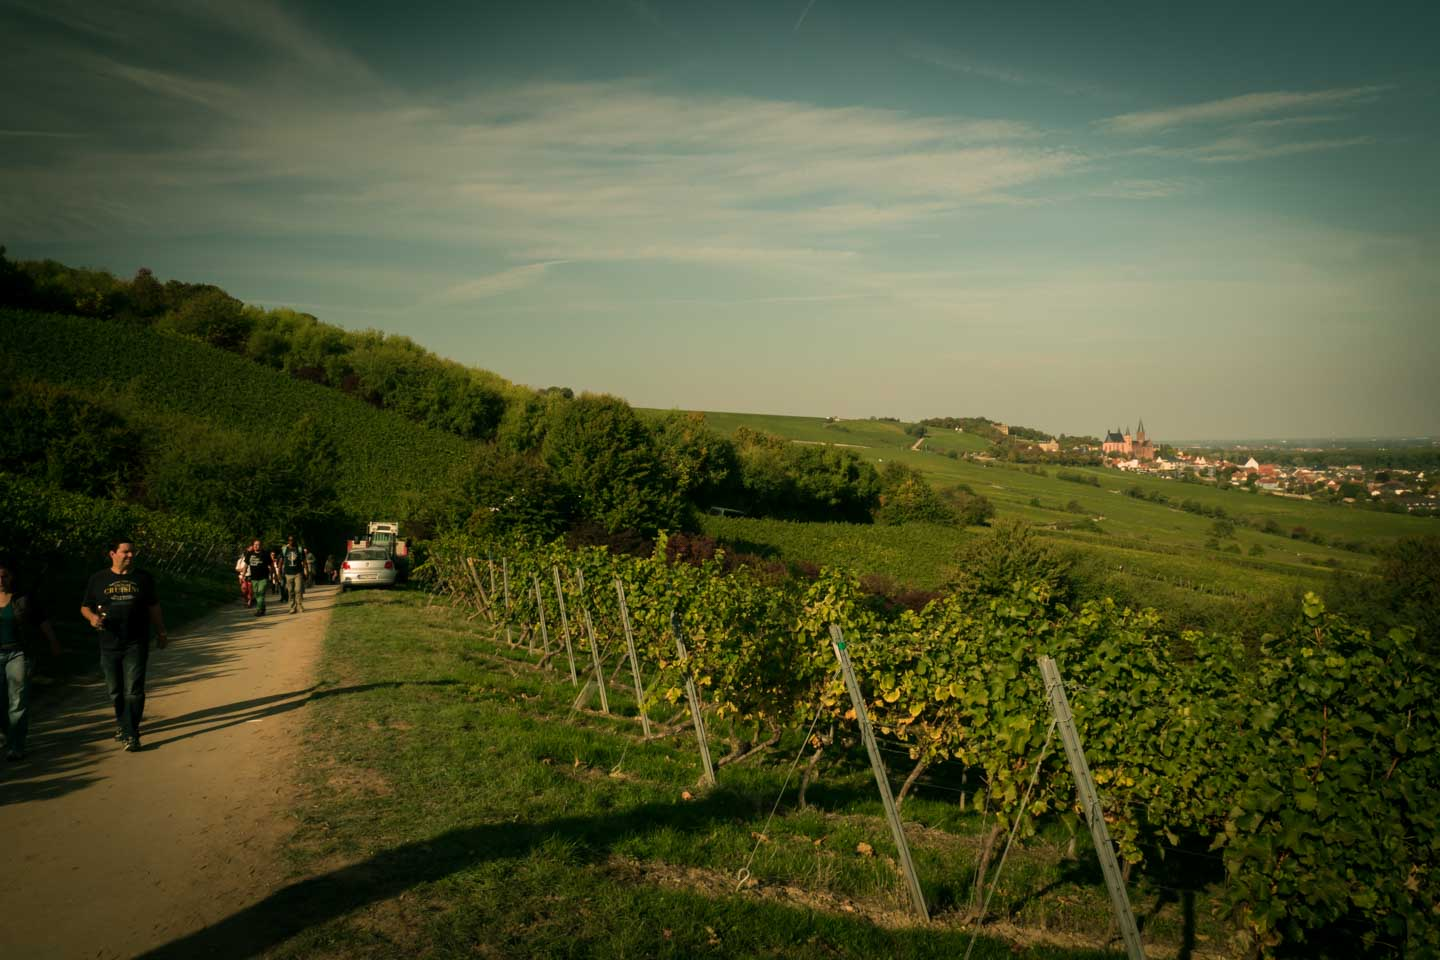 Walkint the Gourmand Hike track in the vineyards / Schlemmerwanderung in Oppenheim 2015